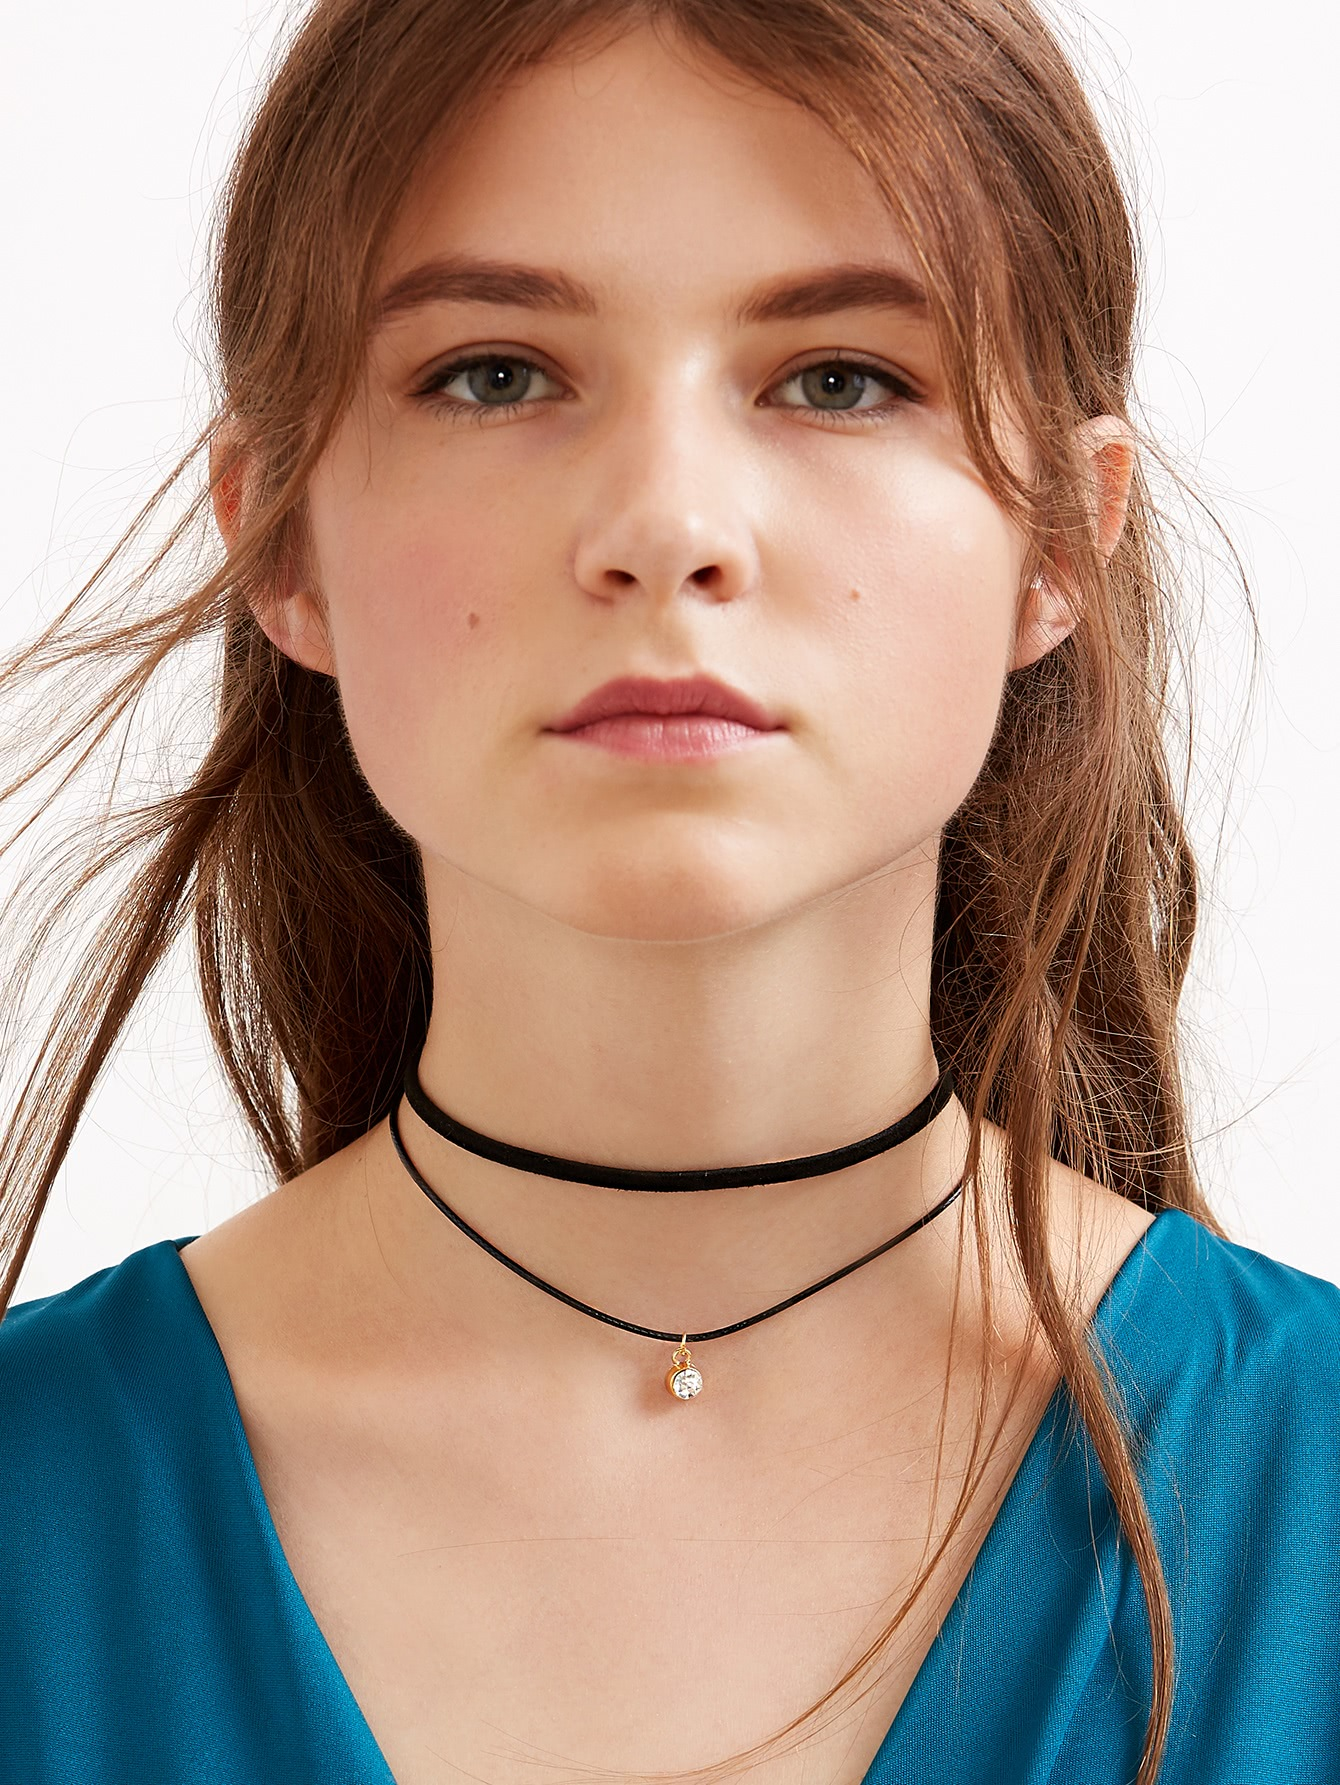 Black Faux Leather Crystal Choker Double Layered Necklace щит tdm sq0905 0094